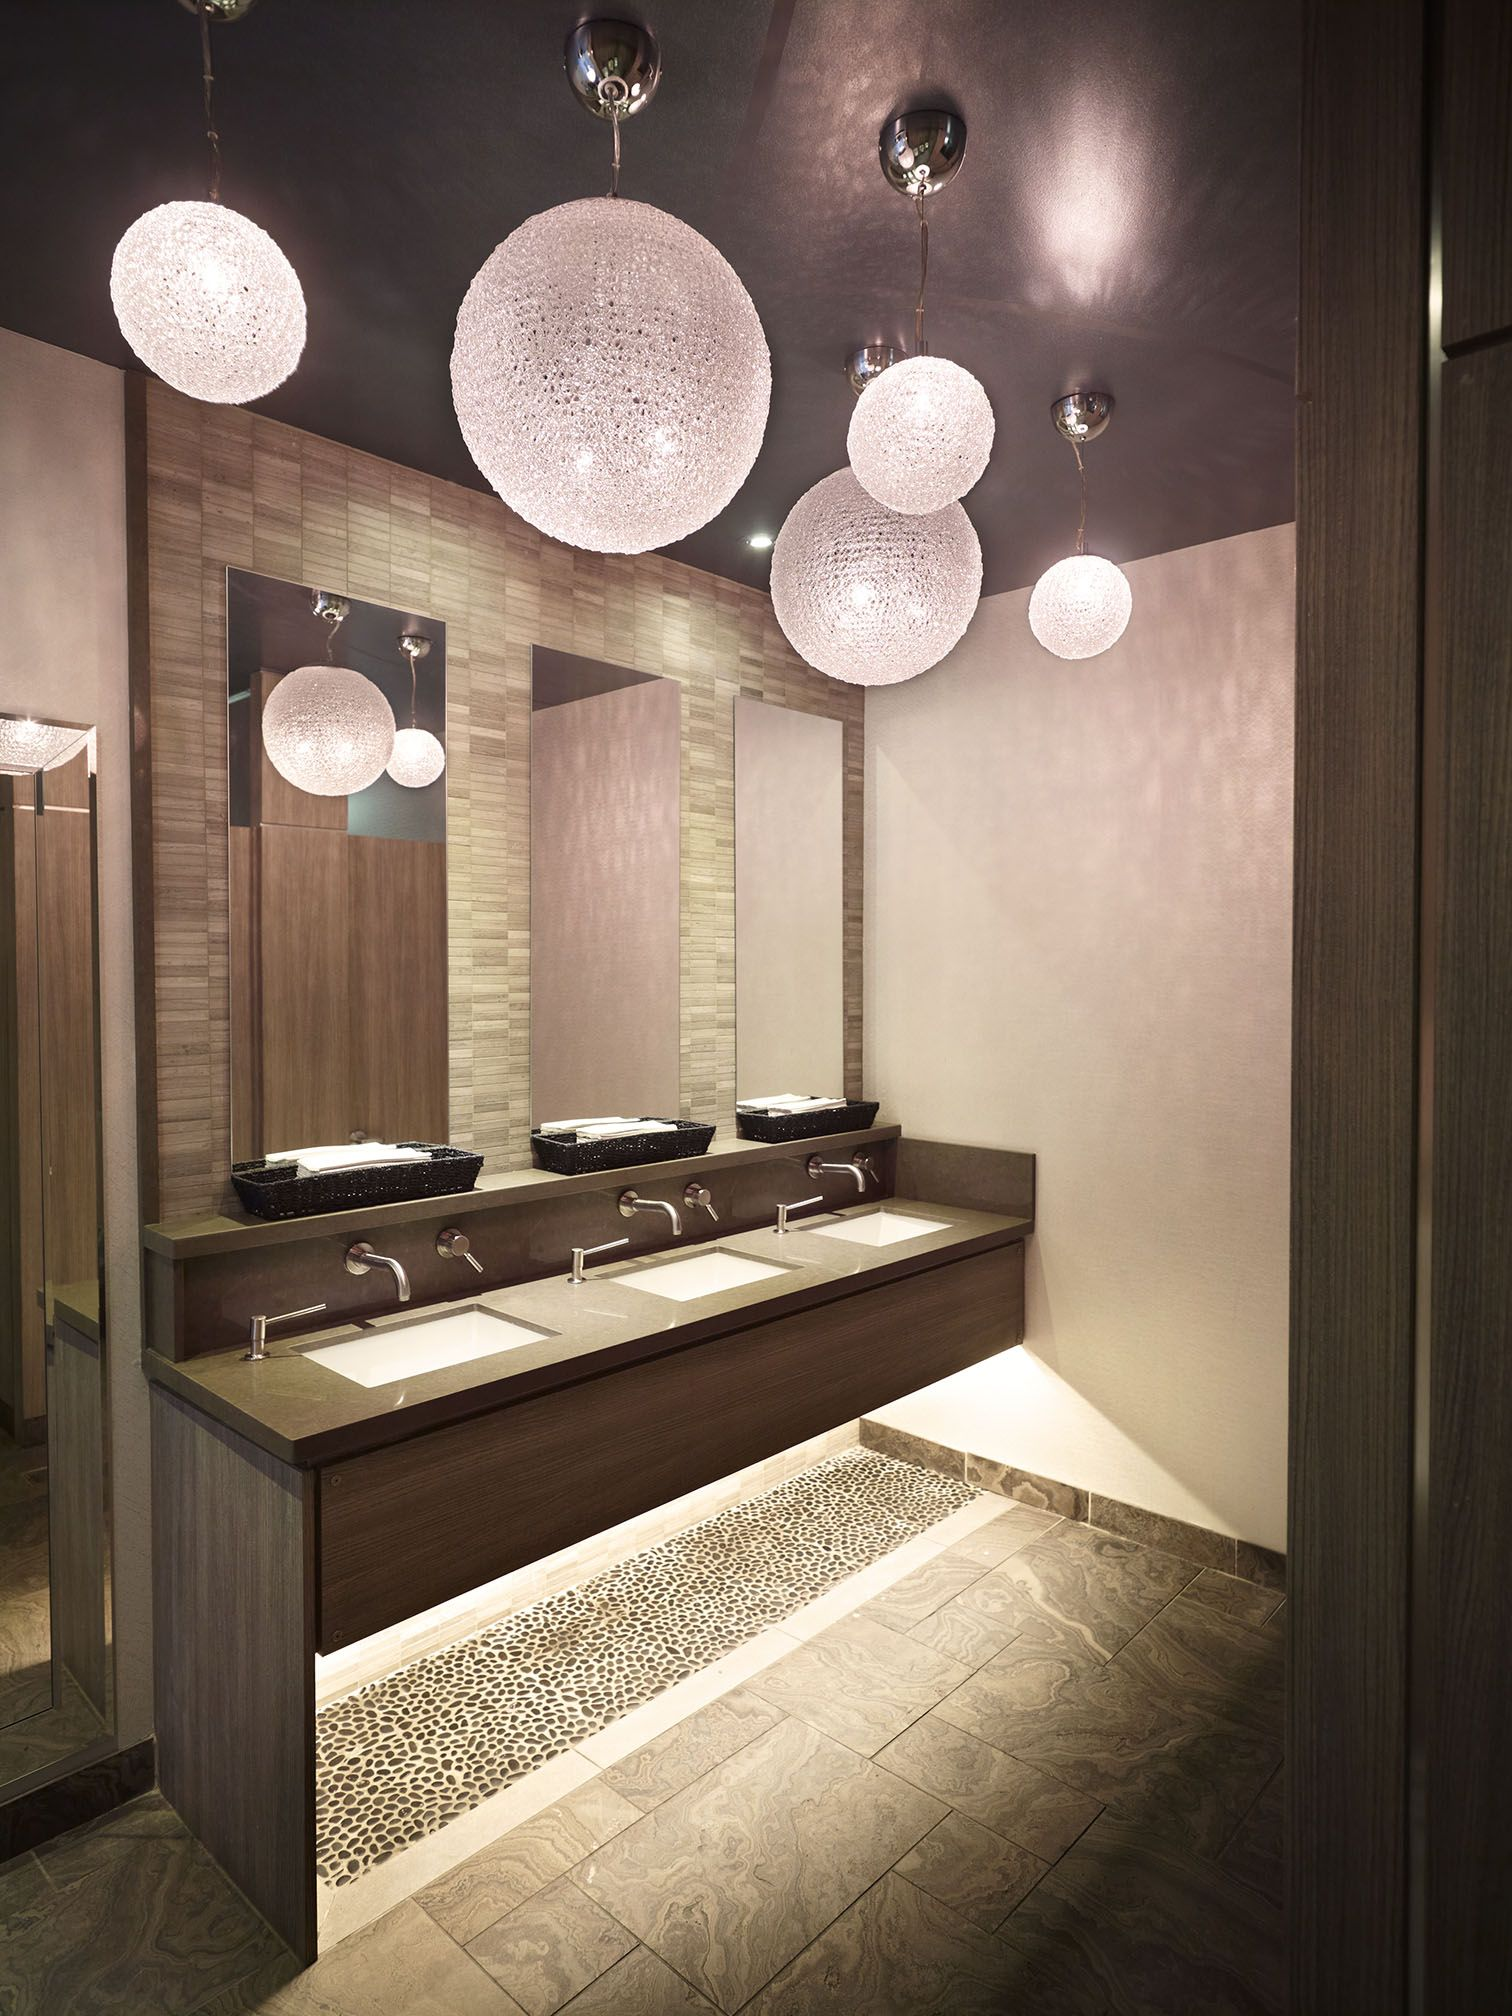 Restaurant Bathroom Design Stunning Caesarstone Quartz Surfaces In The Bathrooms At